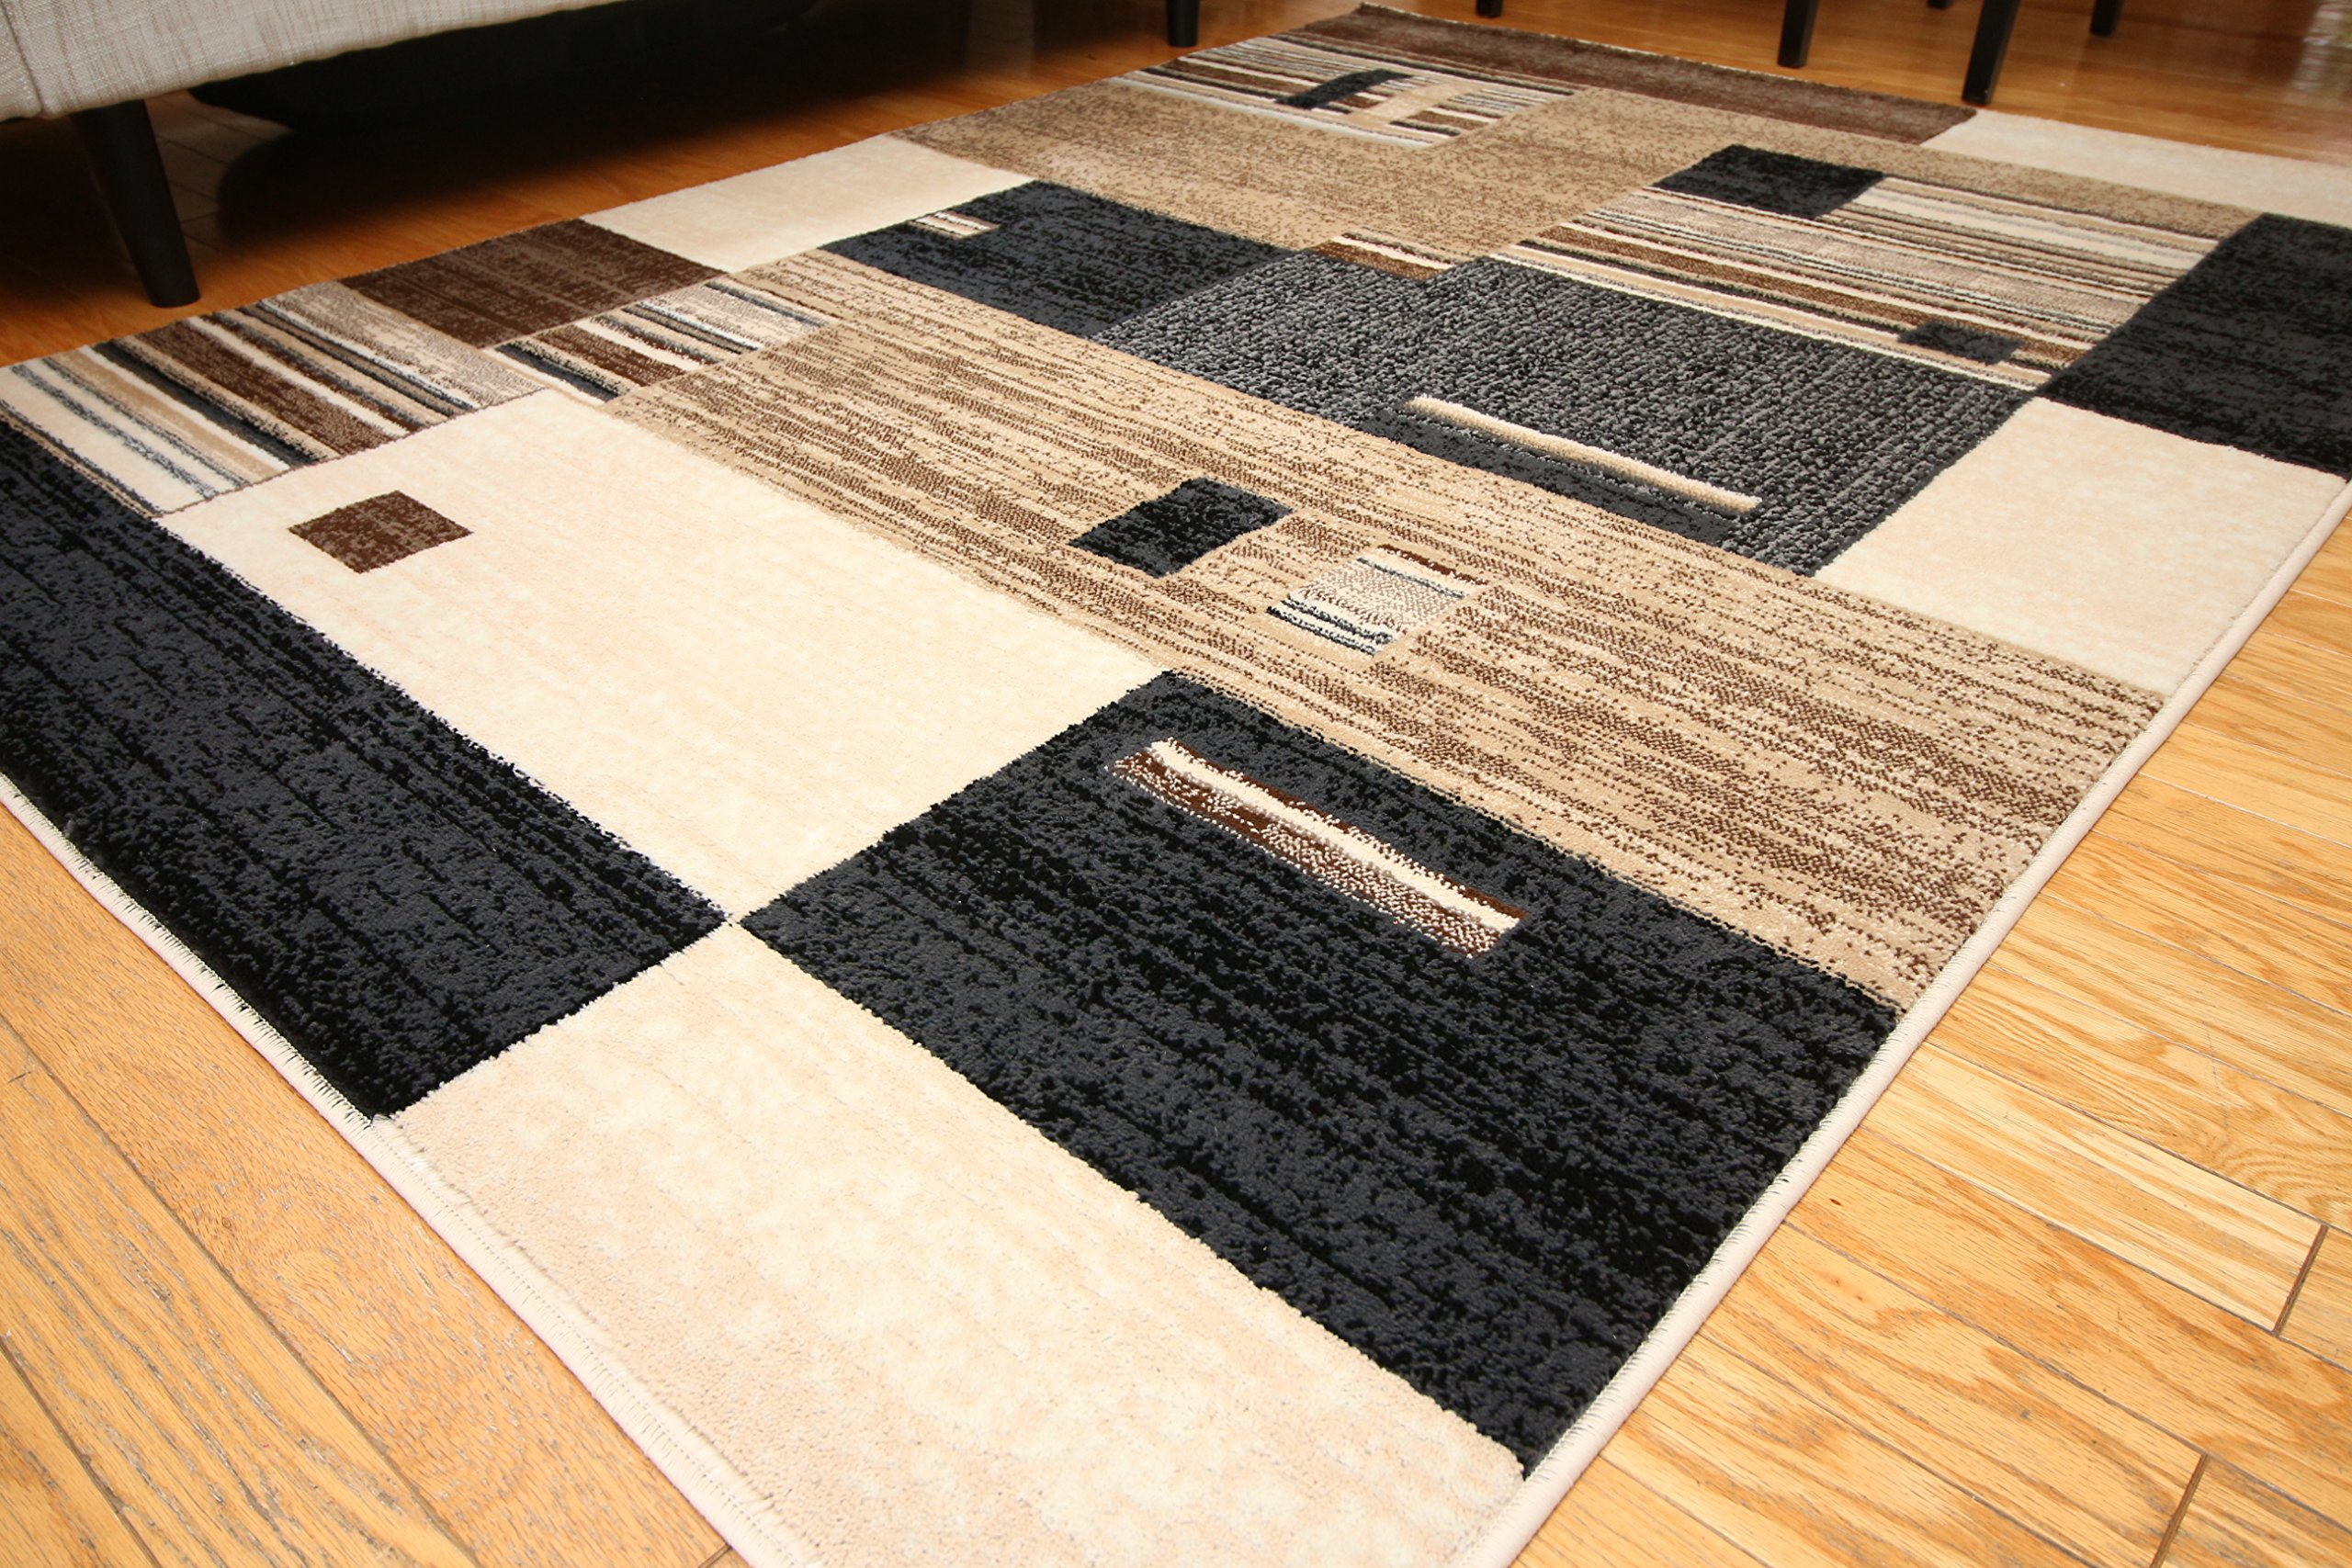 Grey Tan And Brown Area Rug: Feraghan/New City Contemporary Modern Squares Wool Area